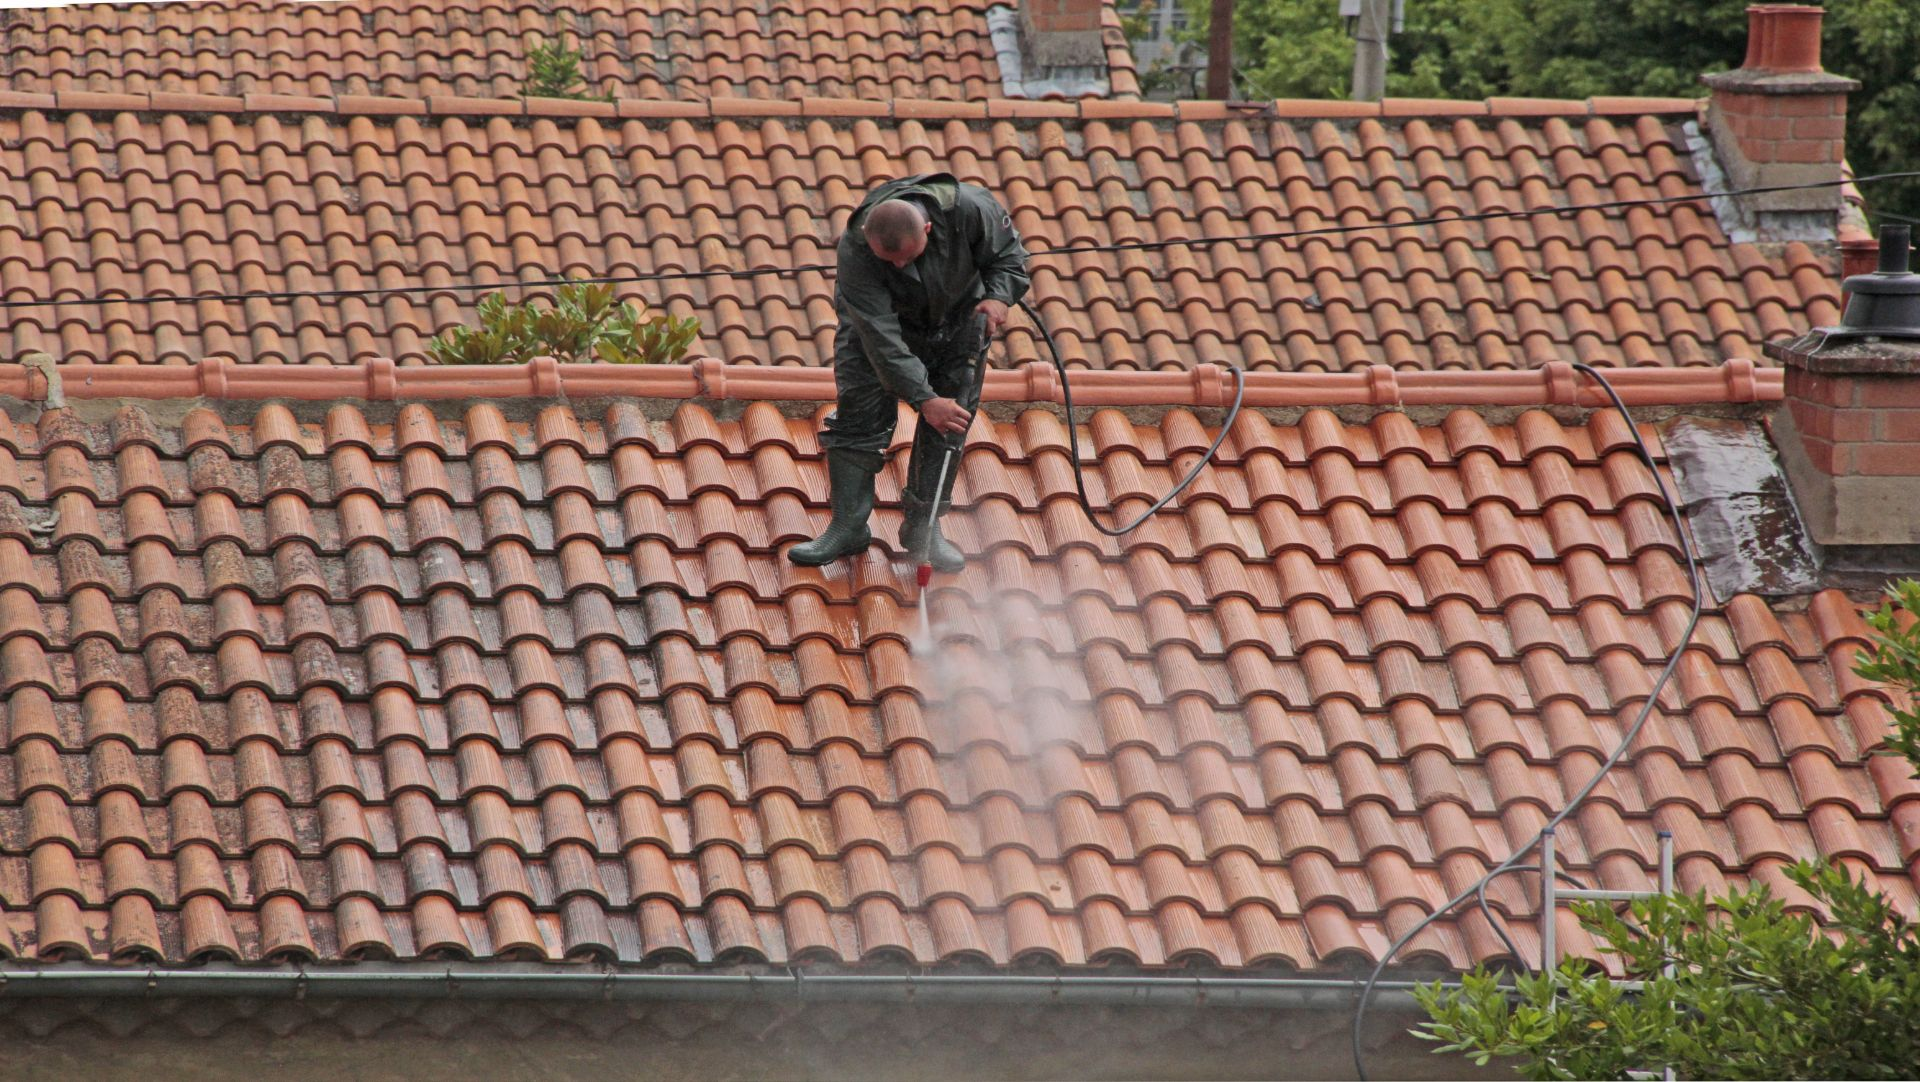 Roof Cleaning Retford, Nottinghamshire